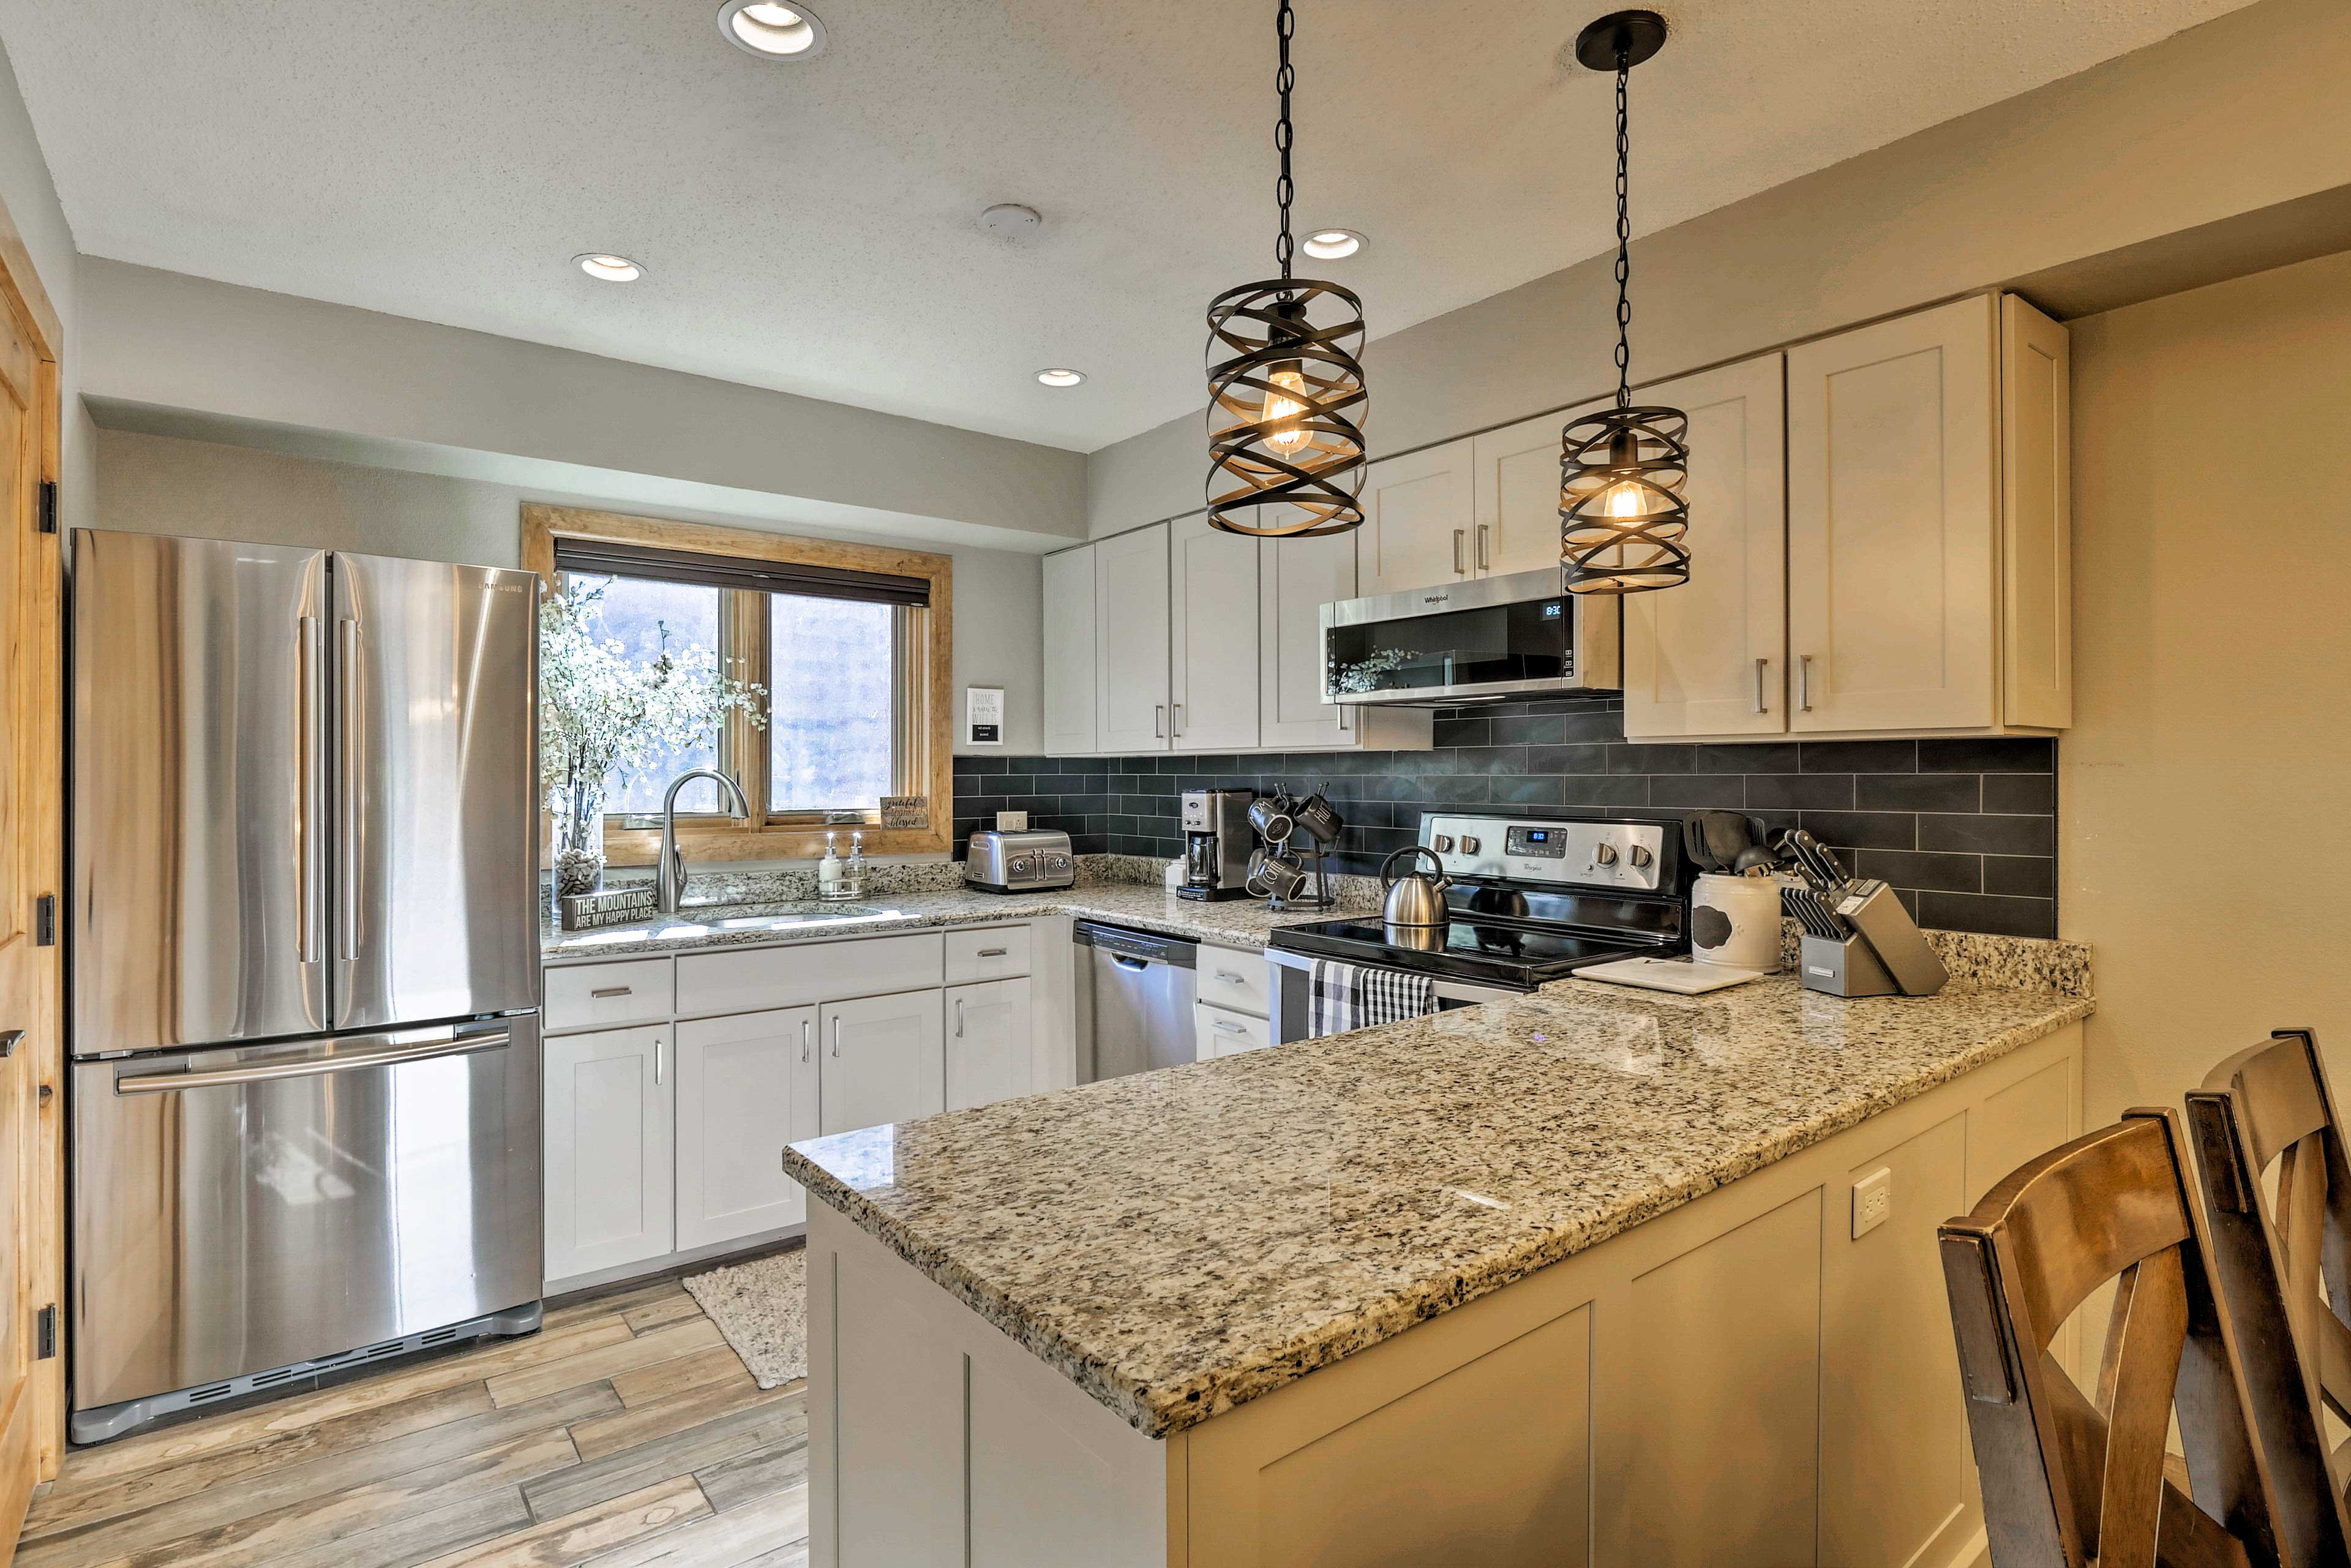 The fully equipped kitchen contains everything you'll need.